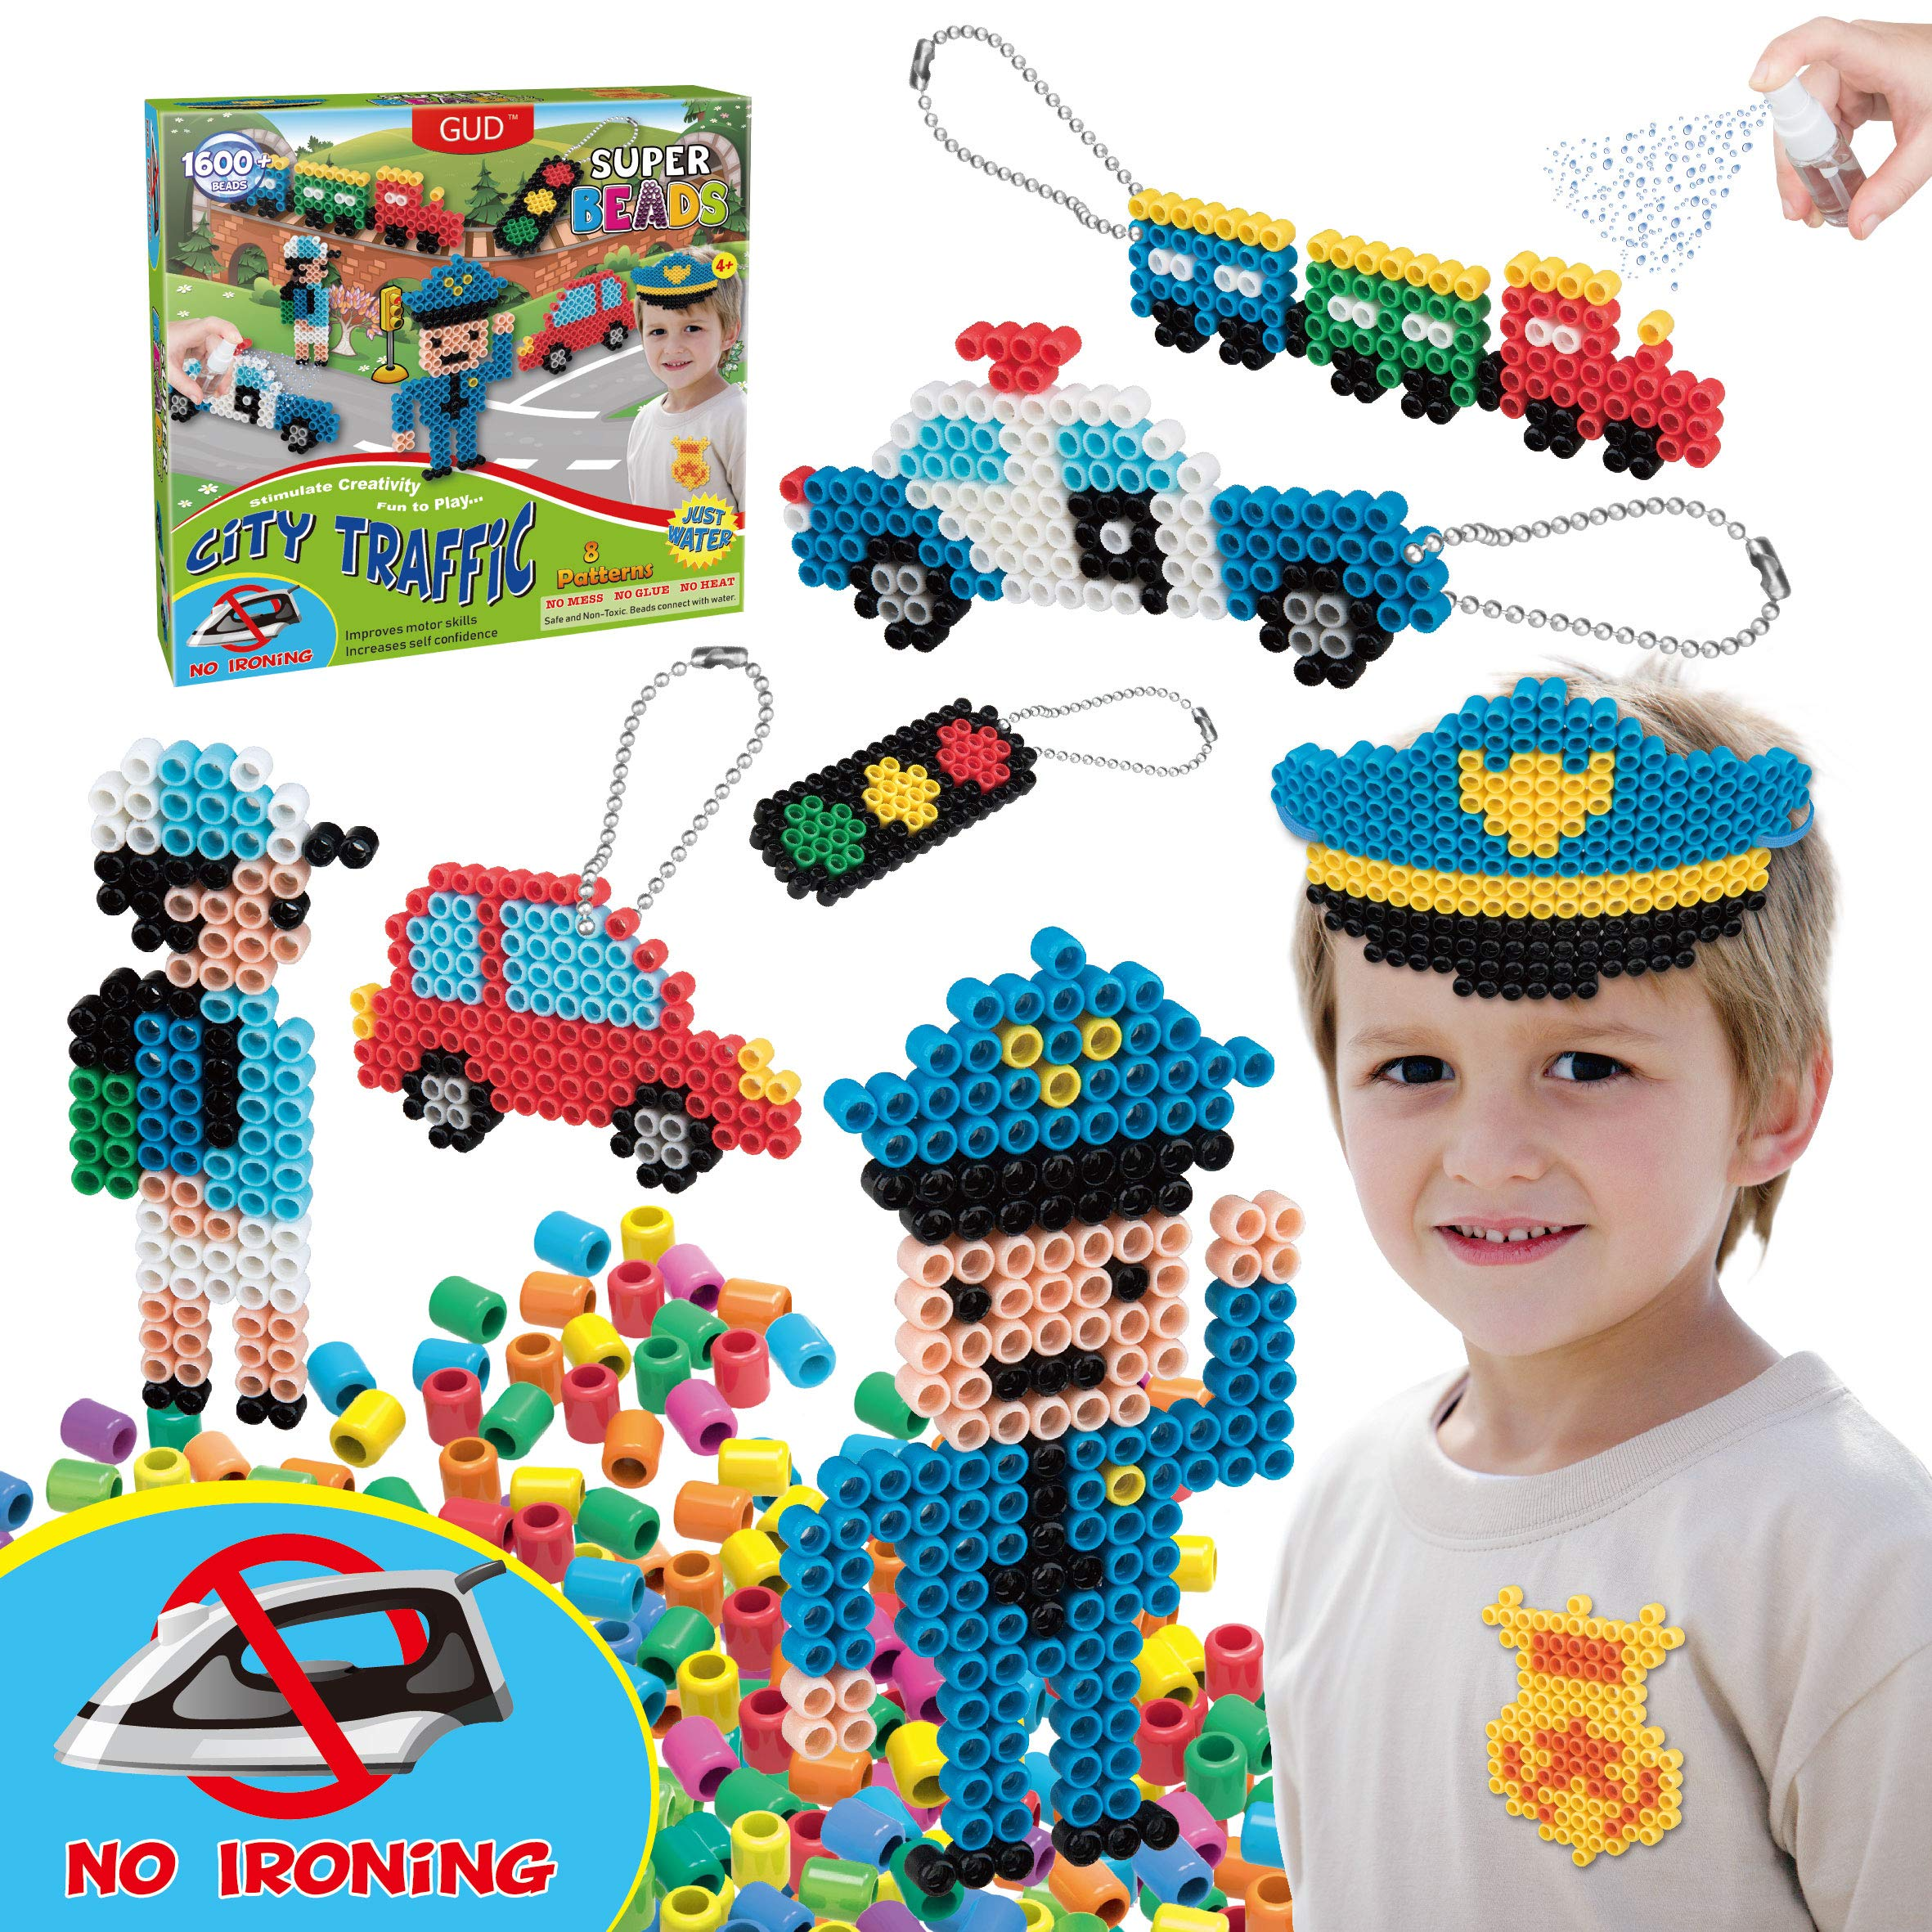 Kids DIY Water Fuse Non Iron Super Beads for Boys Arts and Crafts Toy Set. Boys Indoor Activity Fun Project City Traffic Crafts Kit for Boy. Birthday Gift Age 4 5 6 7 8 9 Year Old Boy Present Perler by GUD